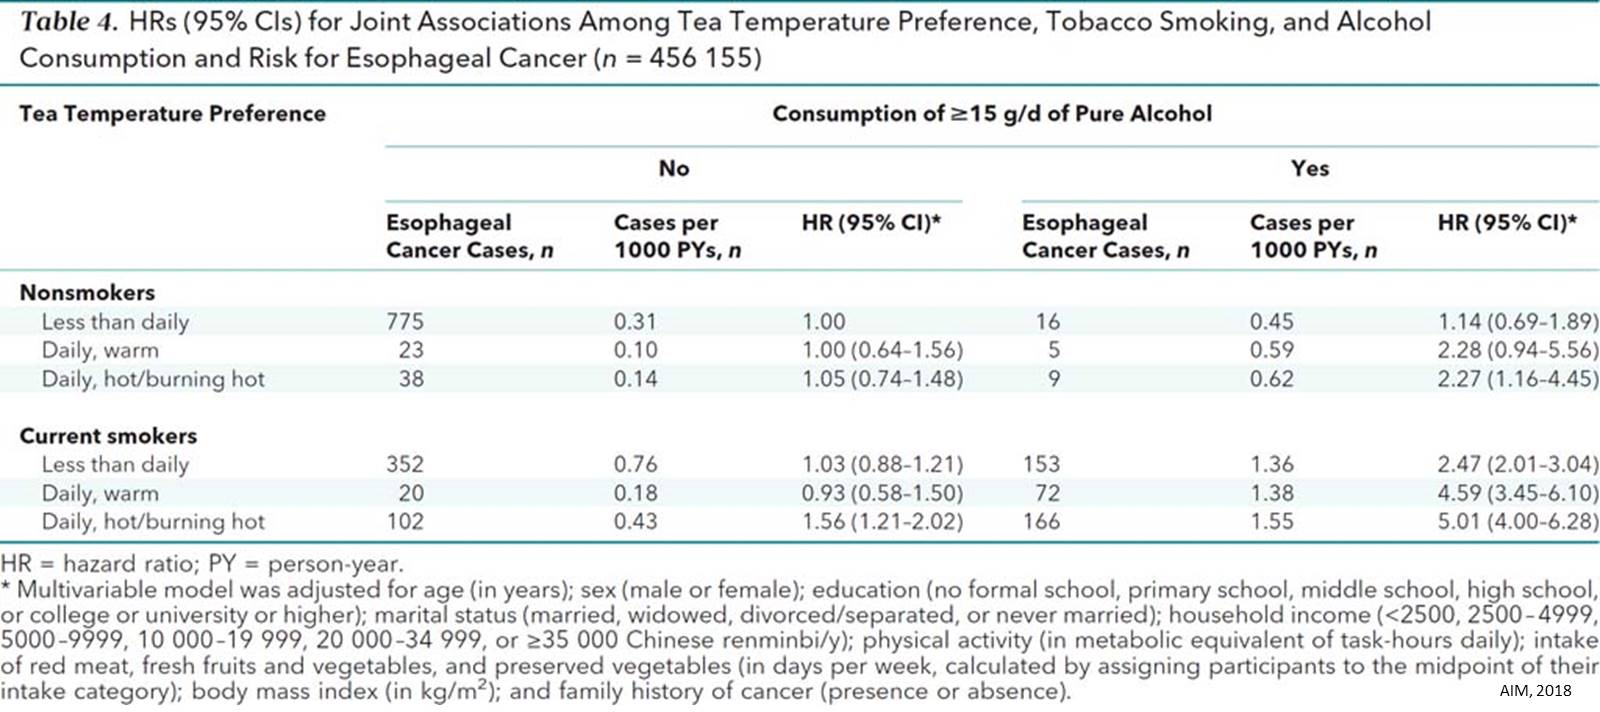 Drinking hot tea associated with a 5-fold increased risk for esophageal cancer